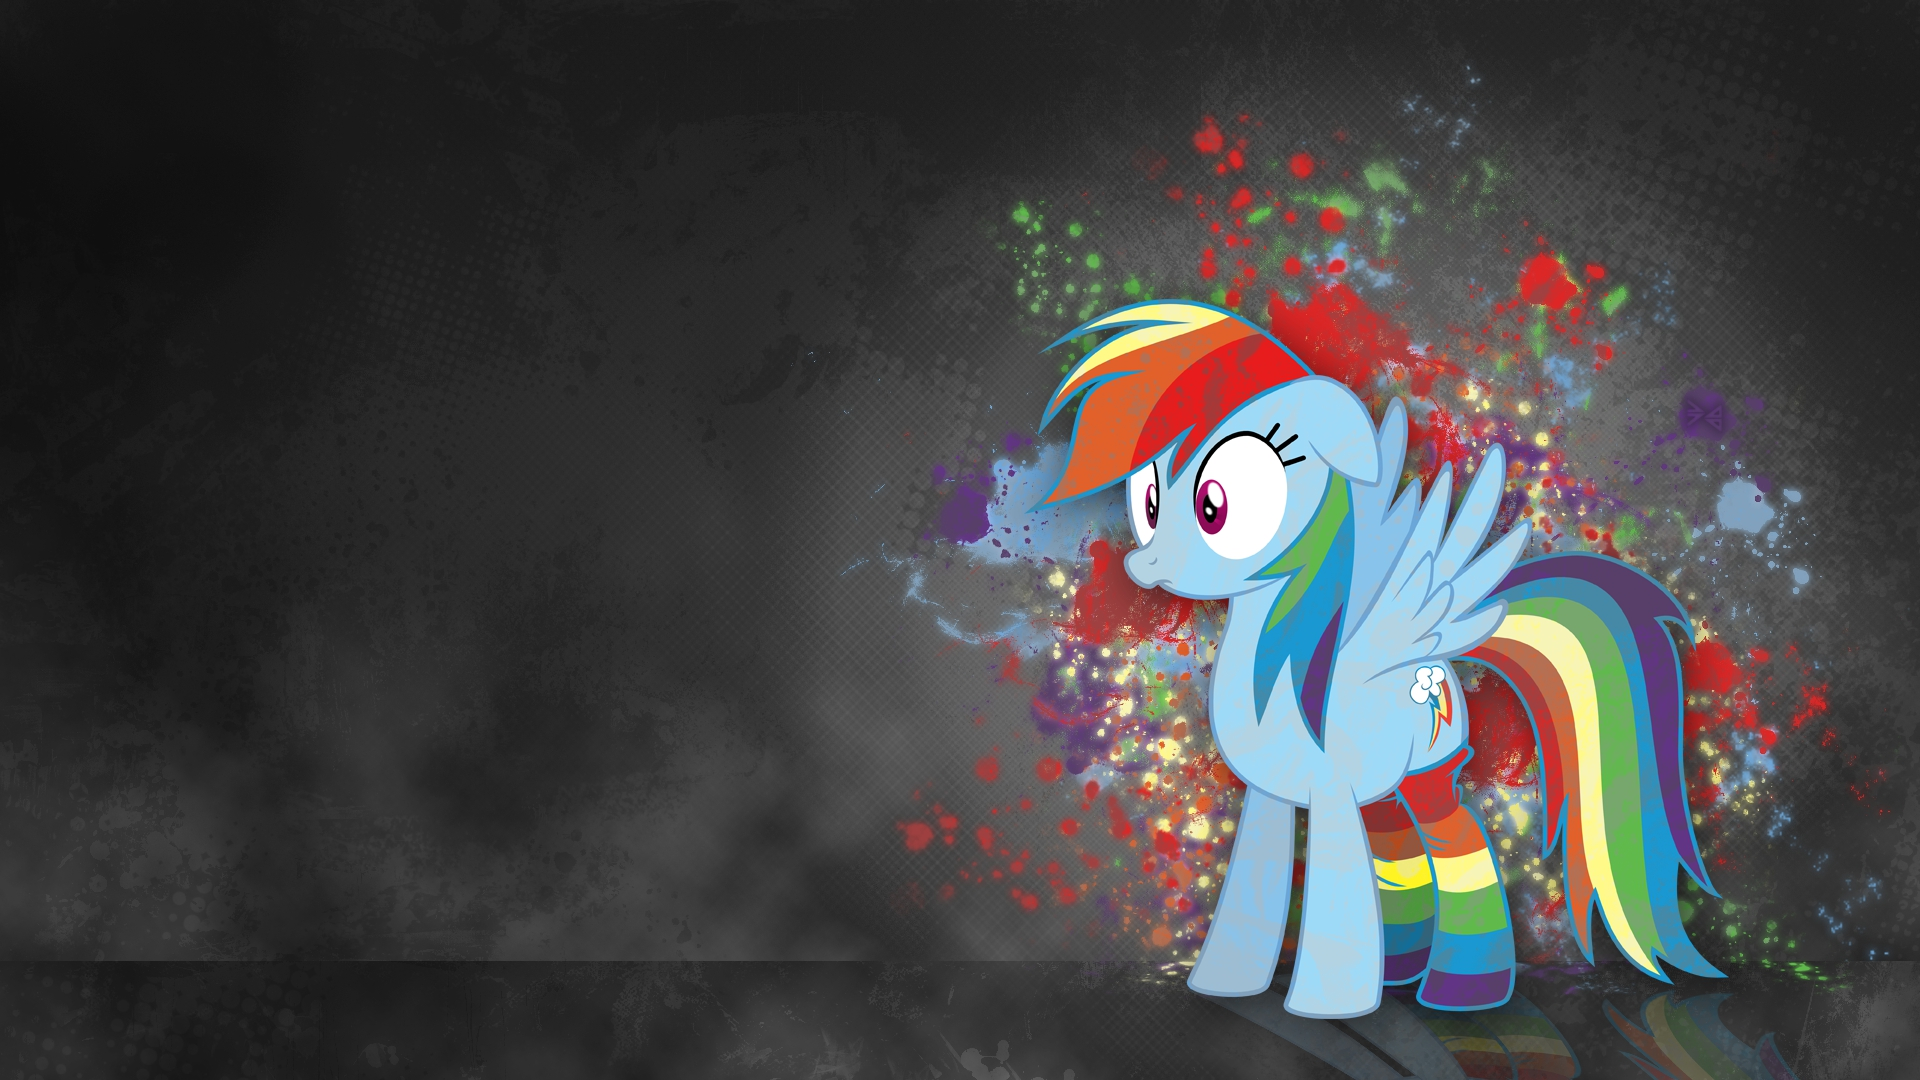 Rainbow Dash Wallpapers HD  PixelsTalk Rainbow Dash Wallpaper  My Little Pony: Friendship is Magic Wallpaper 1920x1080